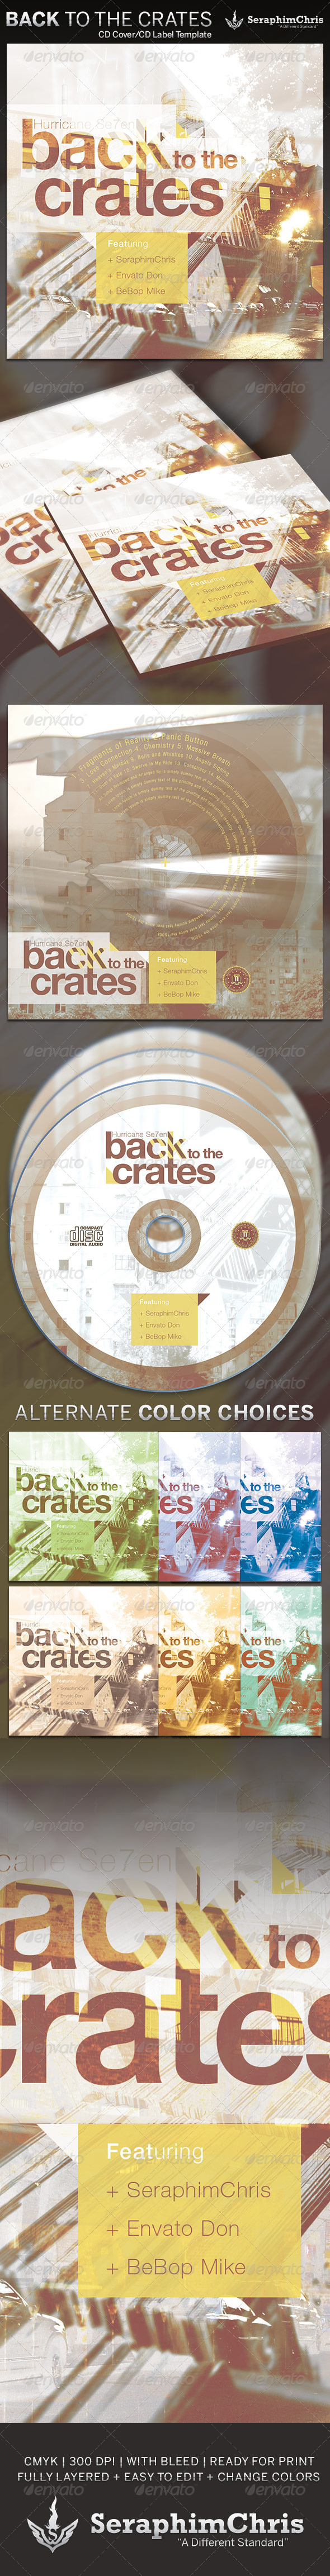 GraphicRiver Back to the Crates CD Cover Artwork Template 4144261